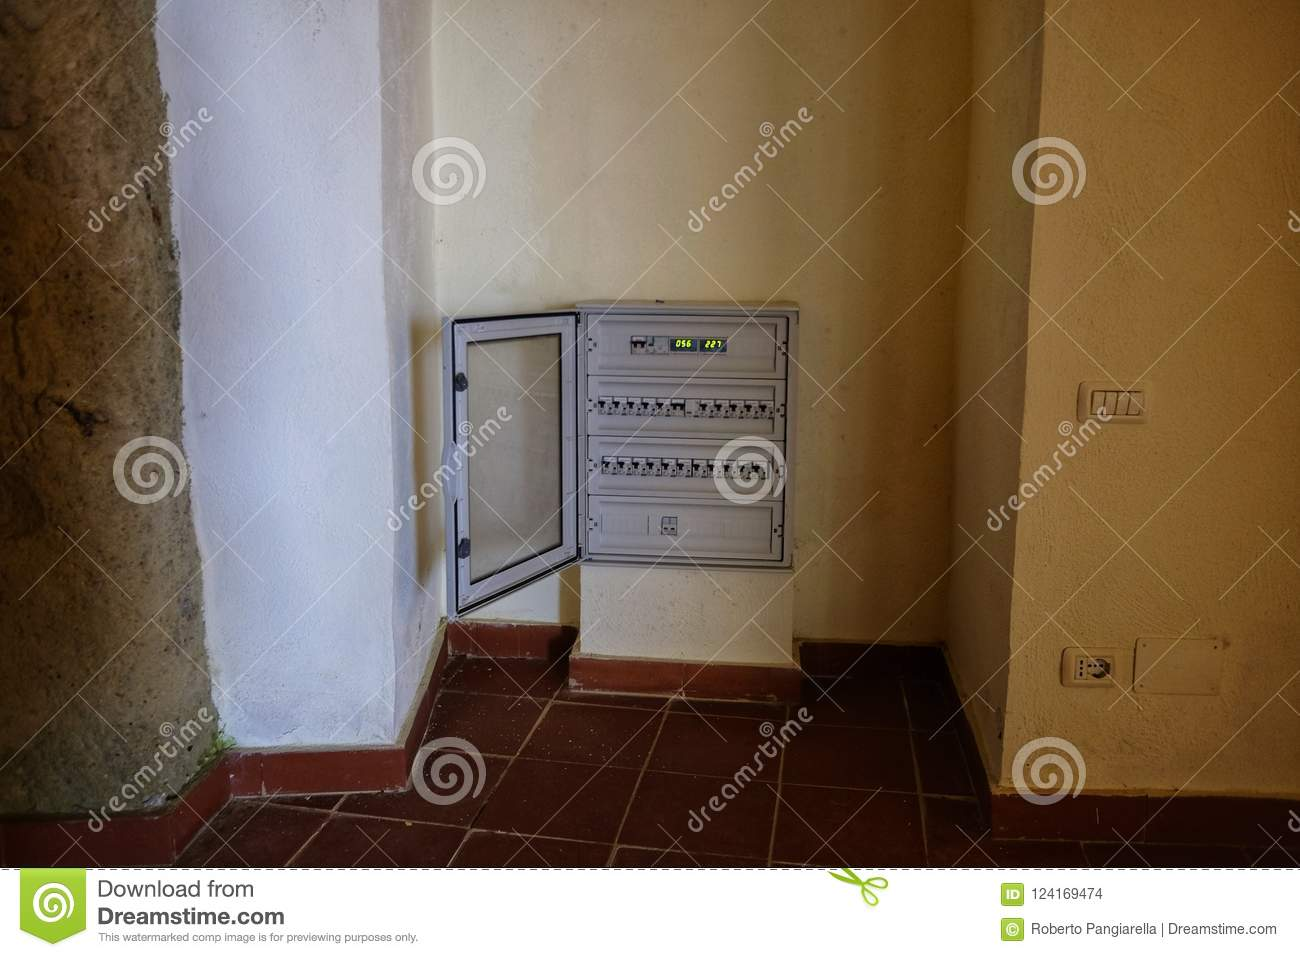 Professional Electrical Panel Open Stock Photo - Image of ... on